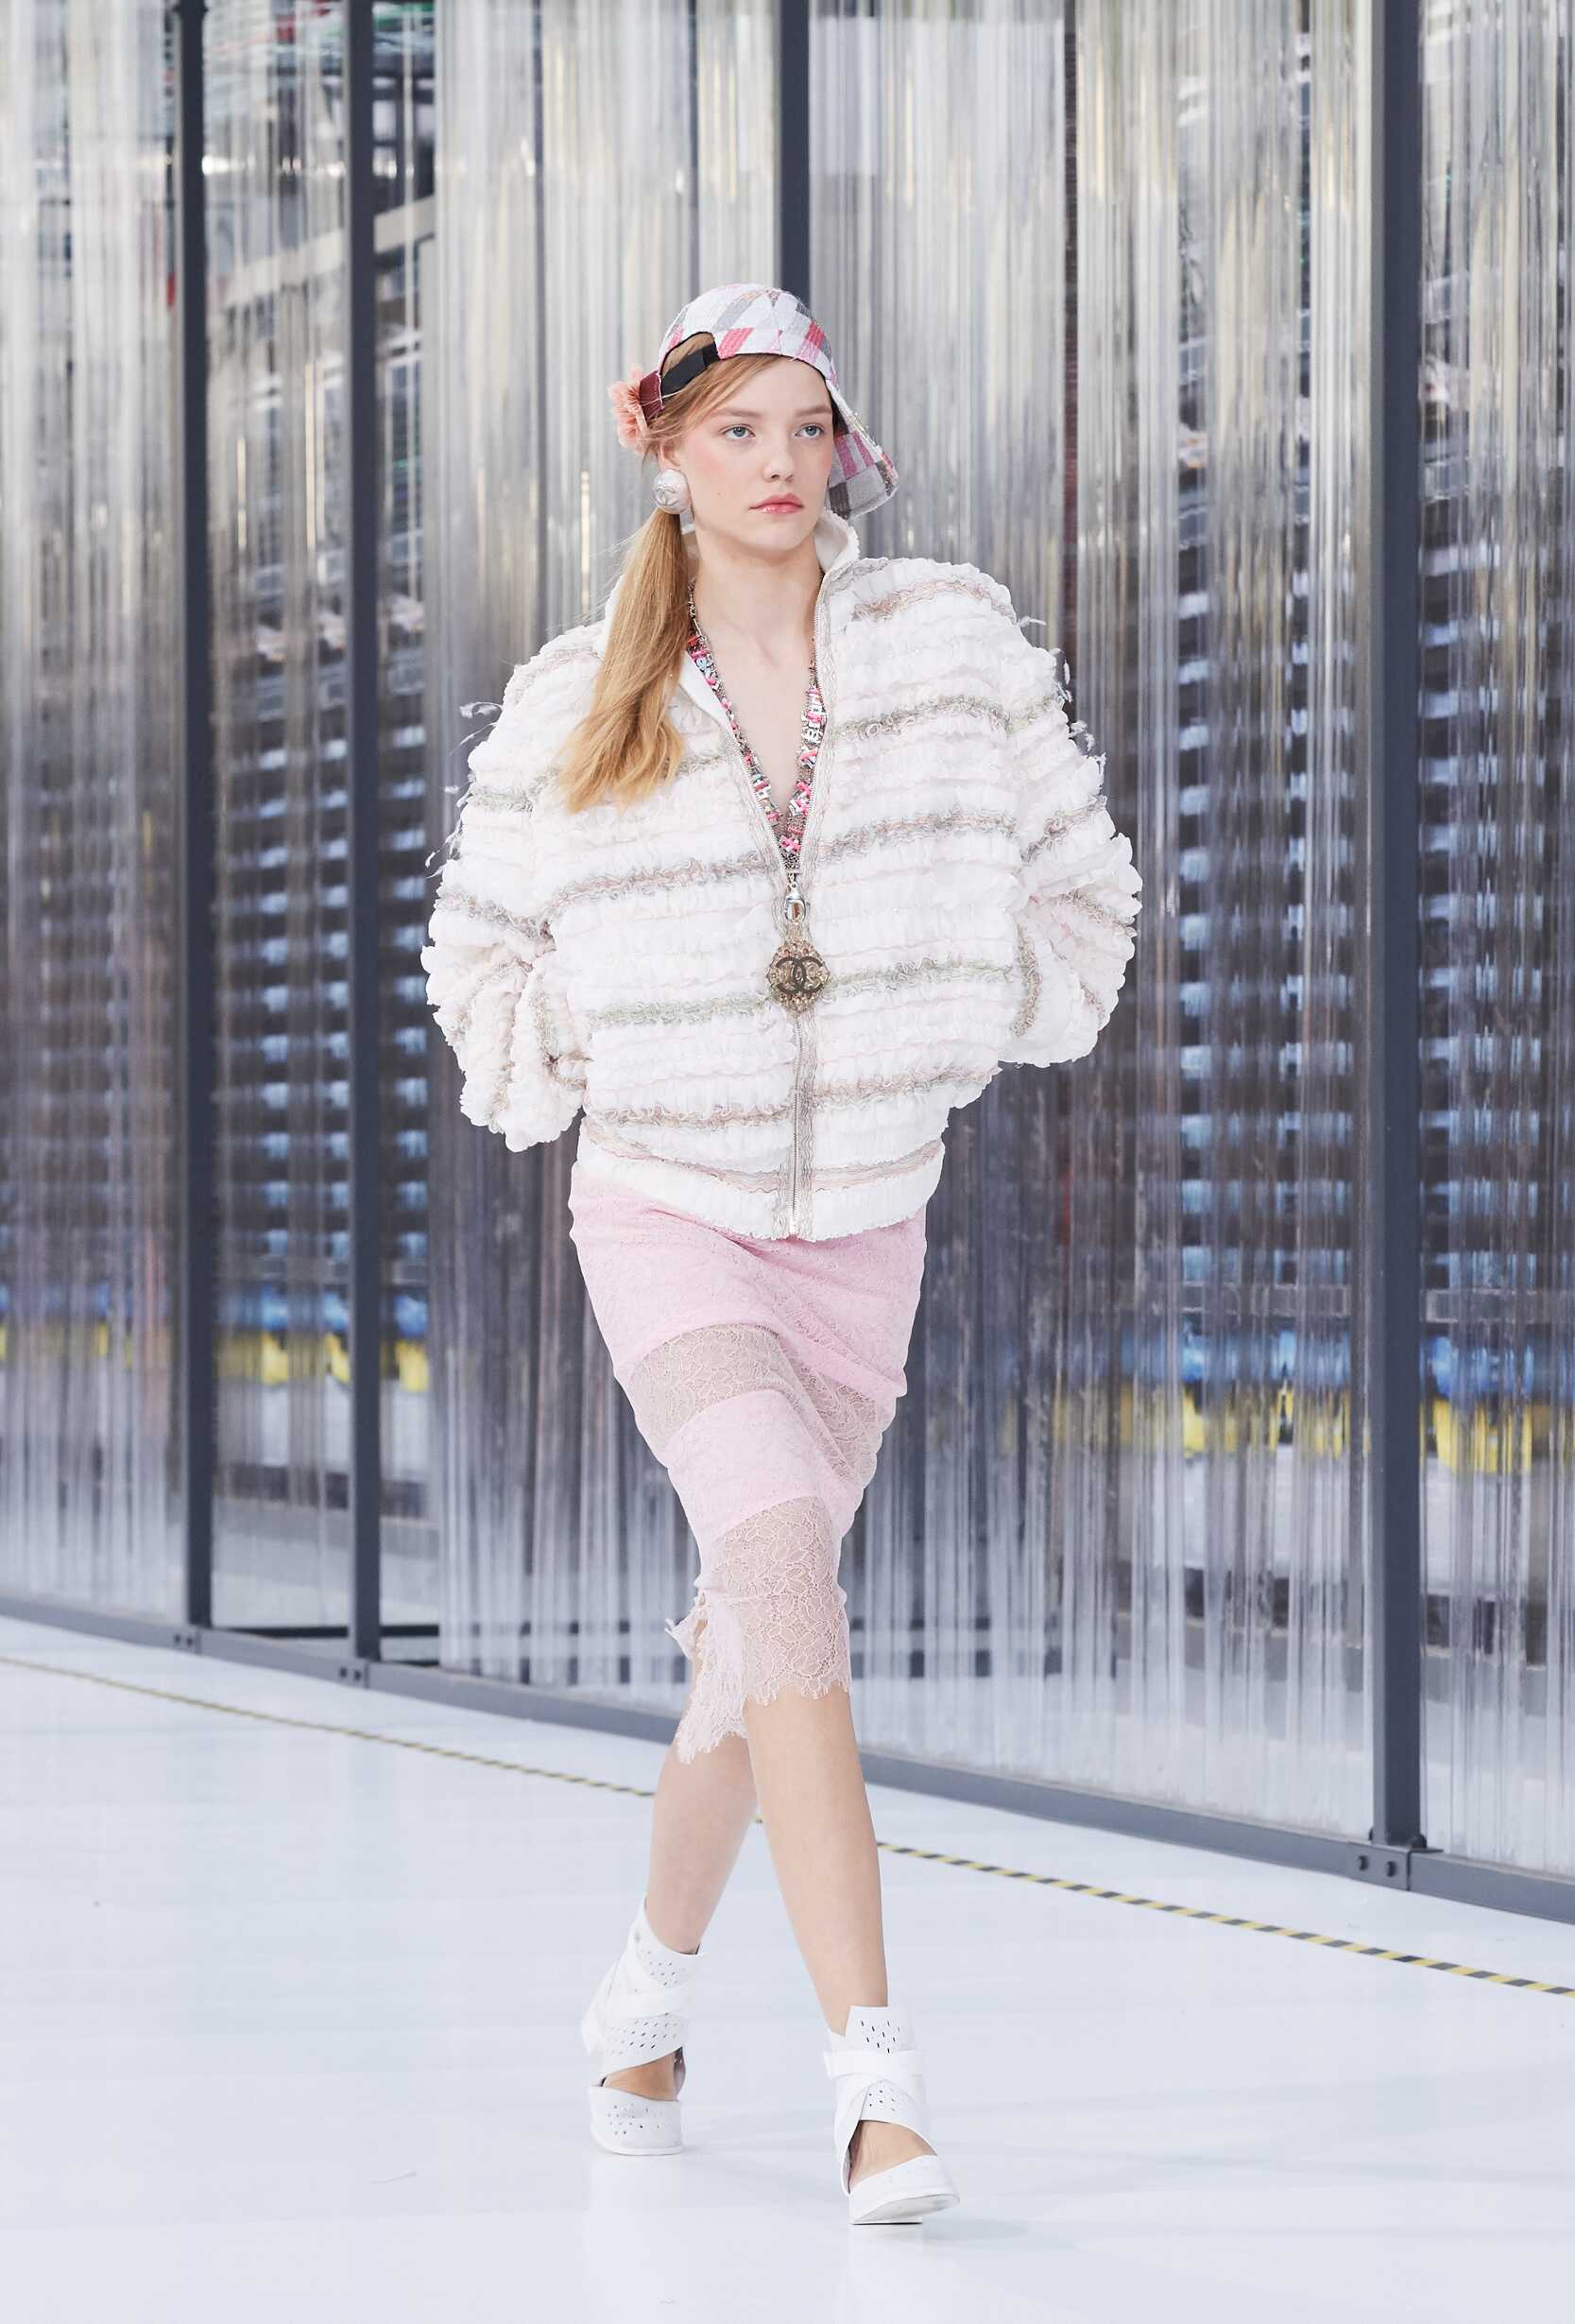 Chanel Woman 2017 Paris Trends